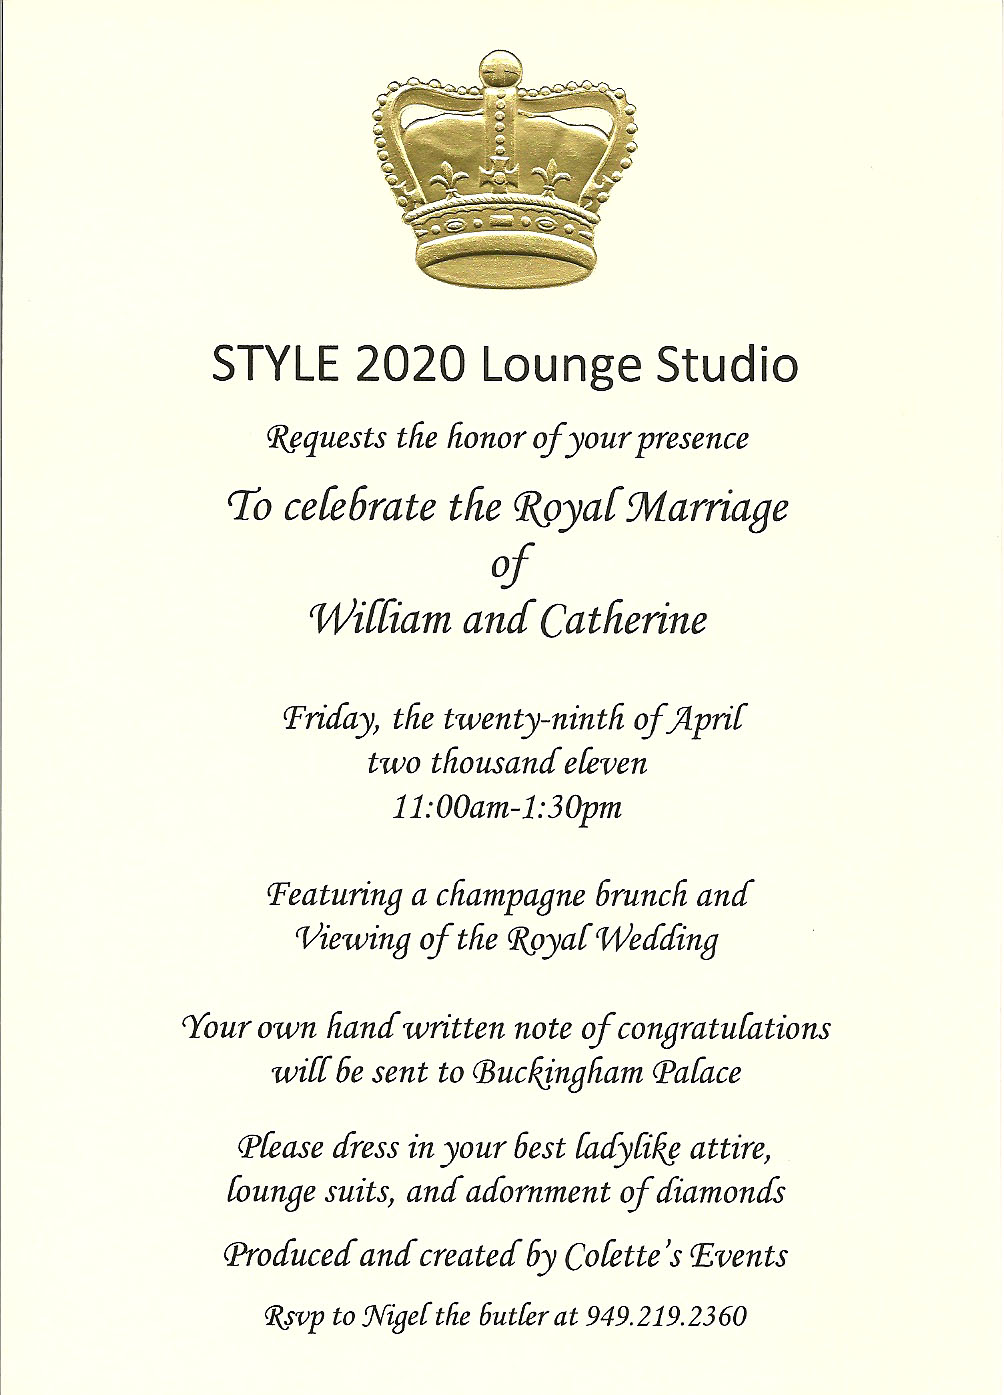 attachment id royal wedding invitation I was so excited to receive this invitation it was the perfect way to view